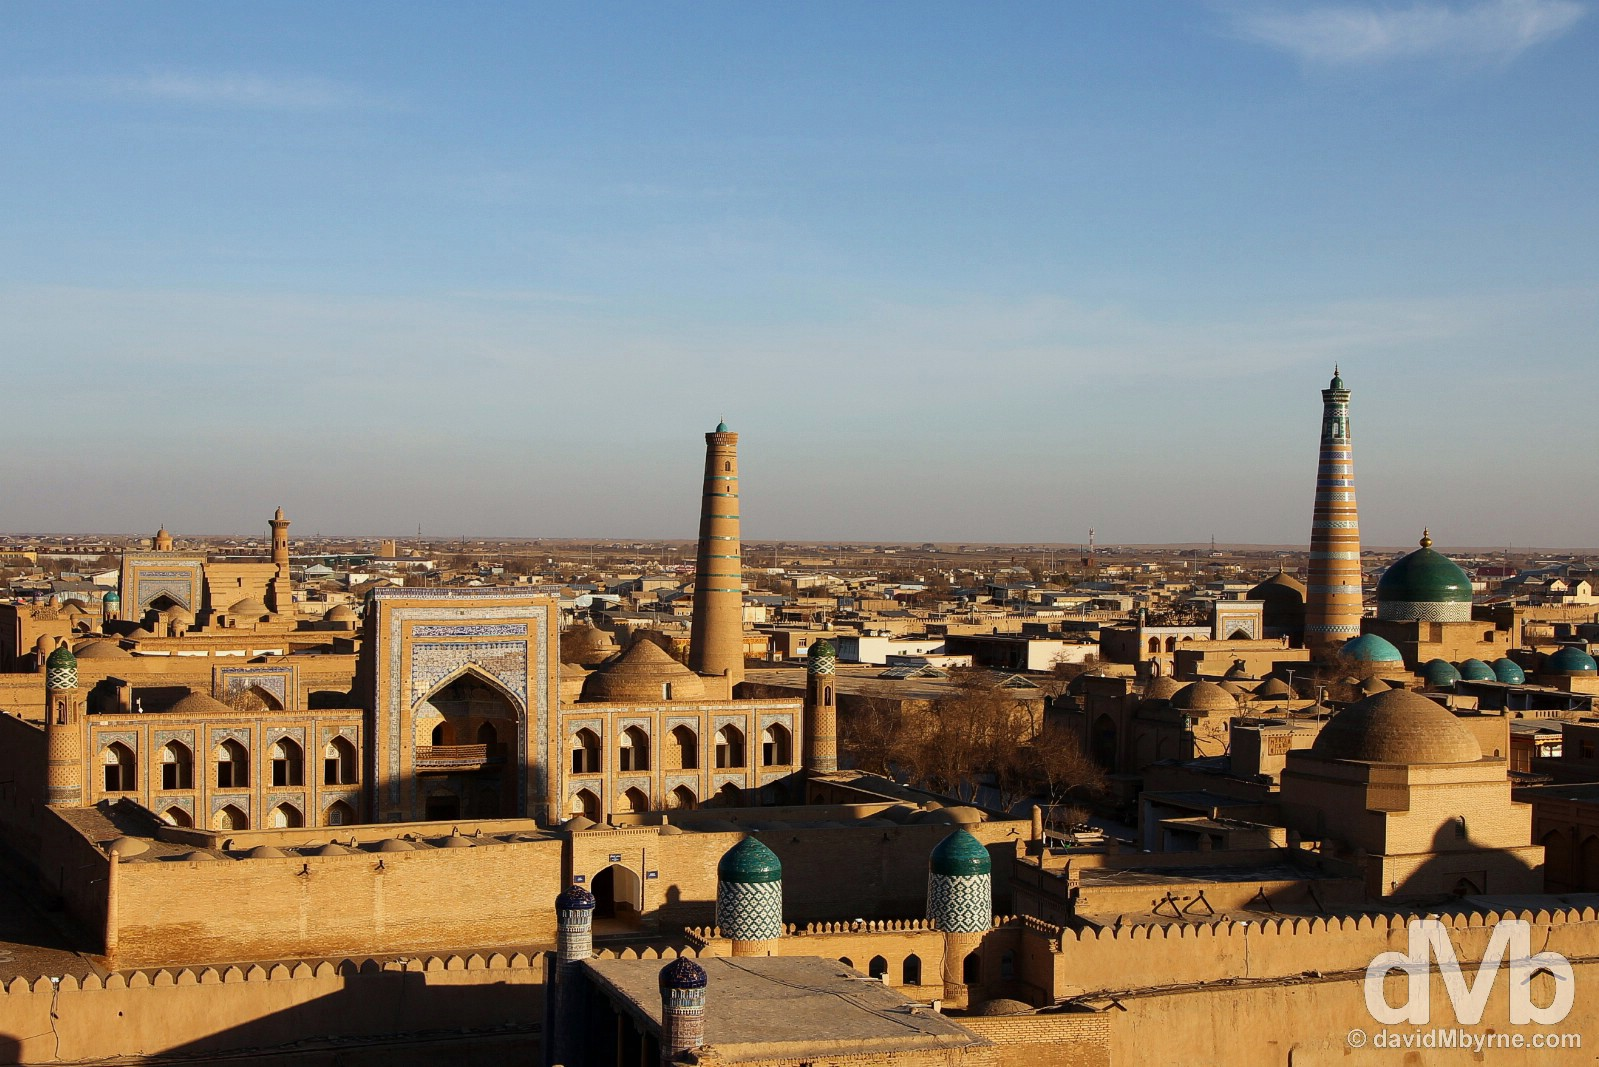 Approaching sunset as seen from the Ark Watchtower in Khiva, Uzbekistan. March 14, 2015.